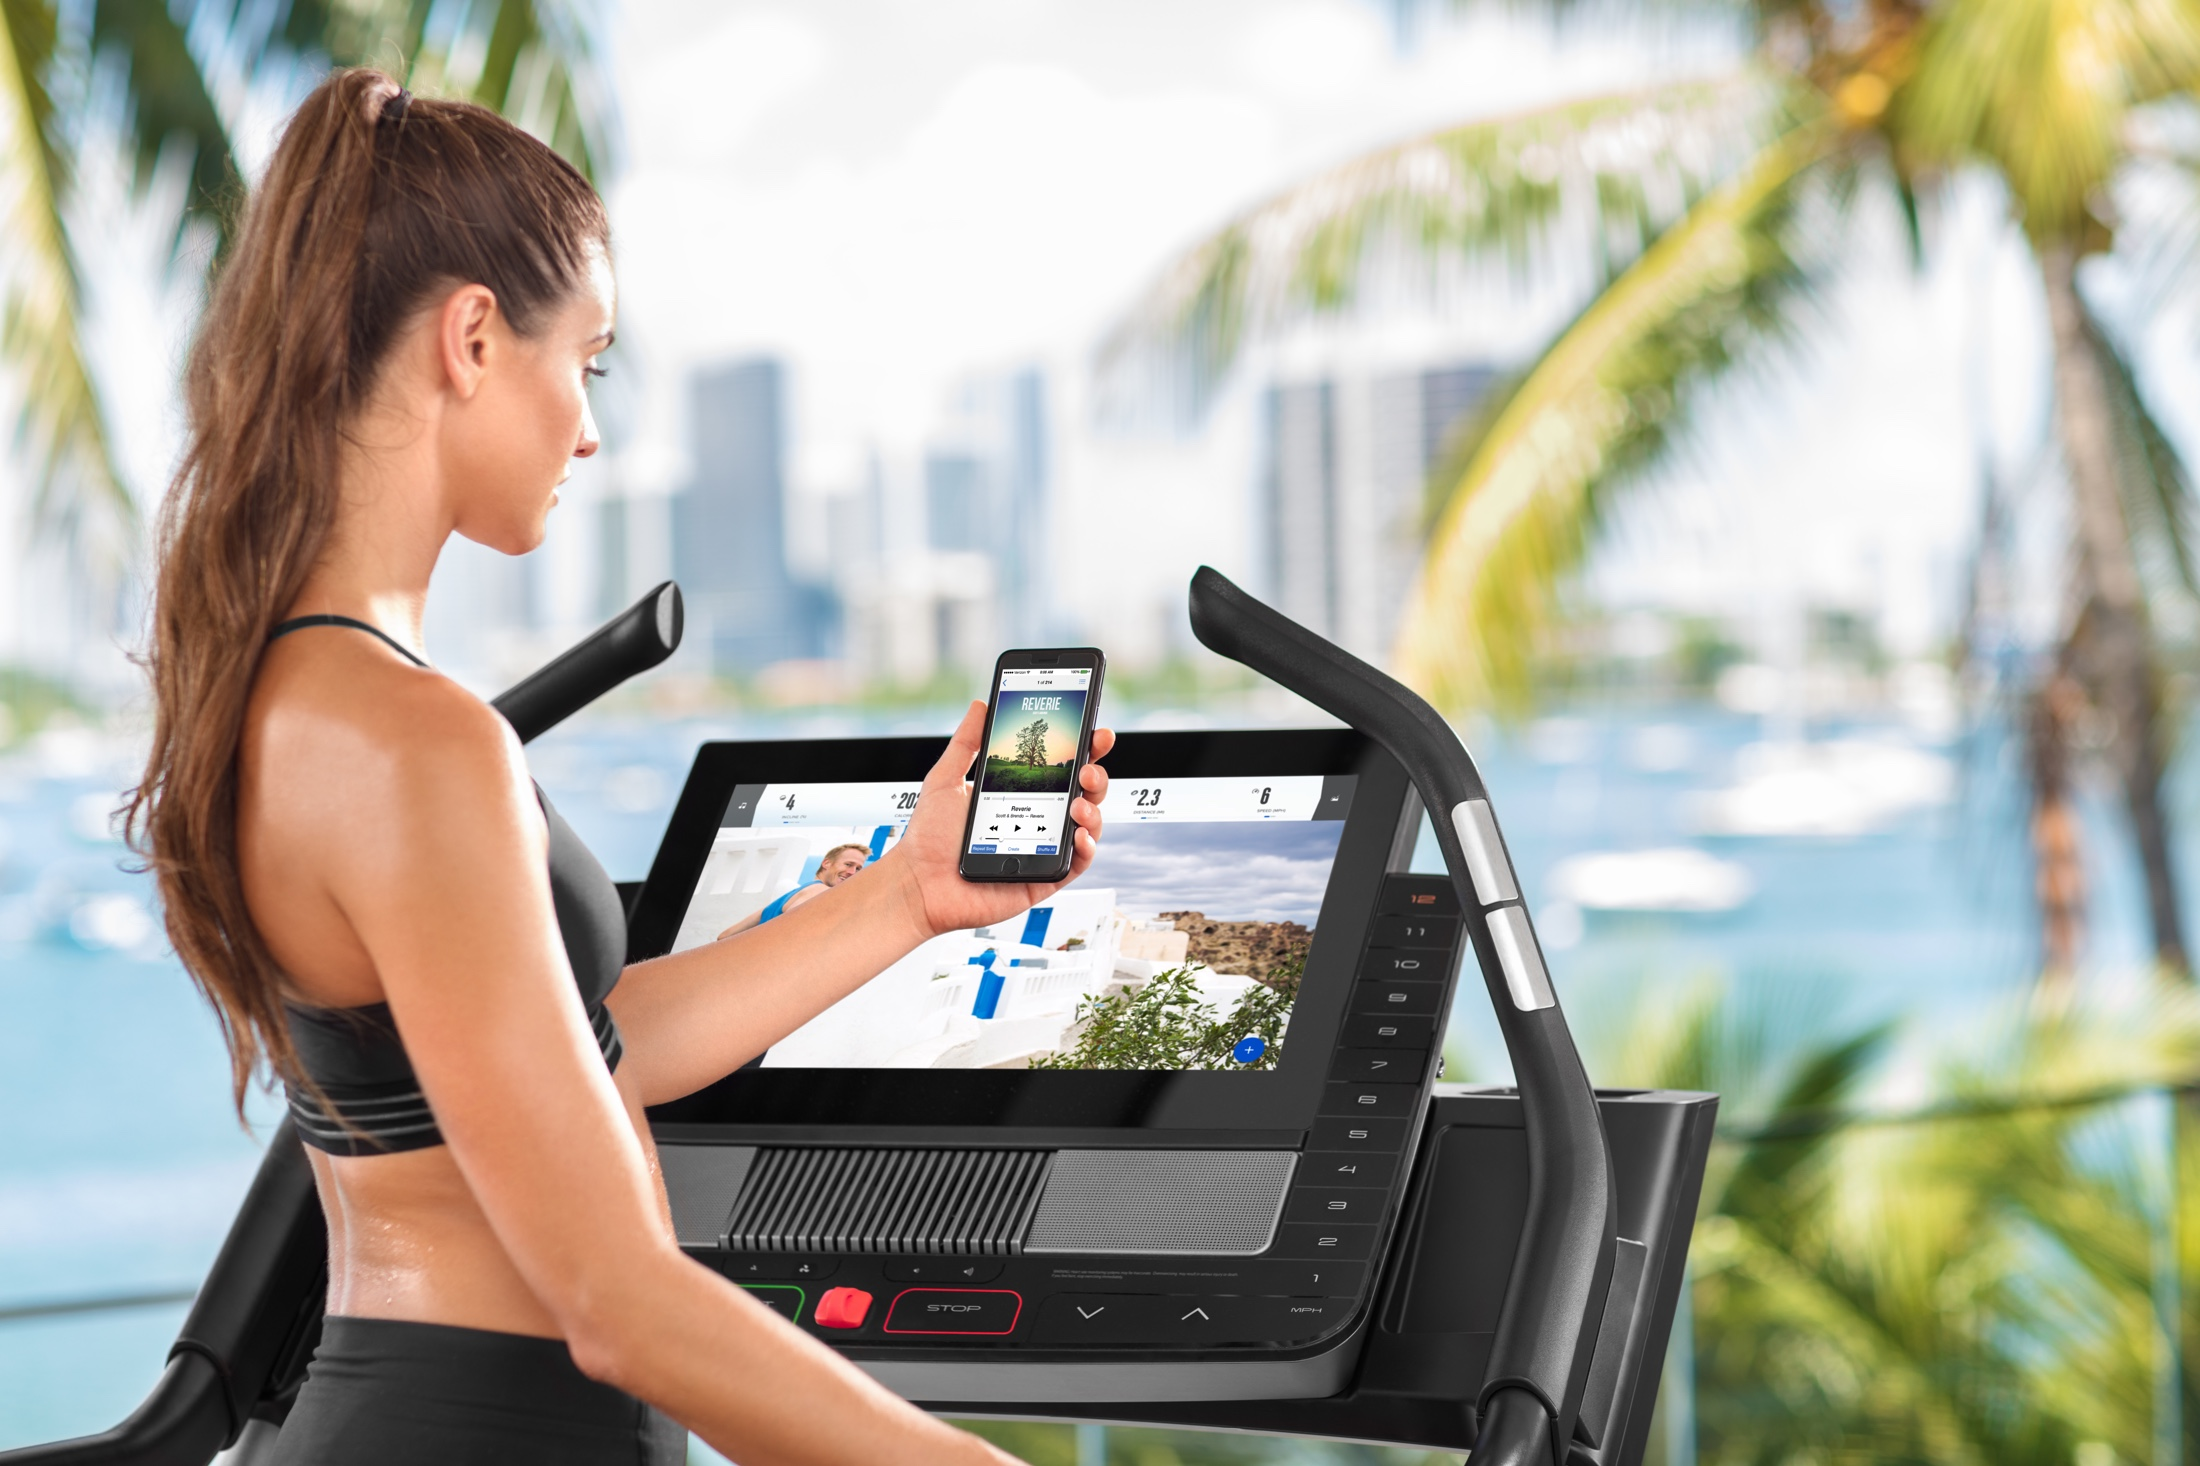 NordicTrack X22i Incline Trainer gallery image 6